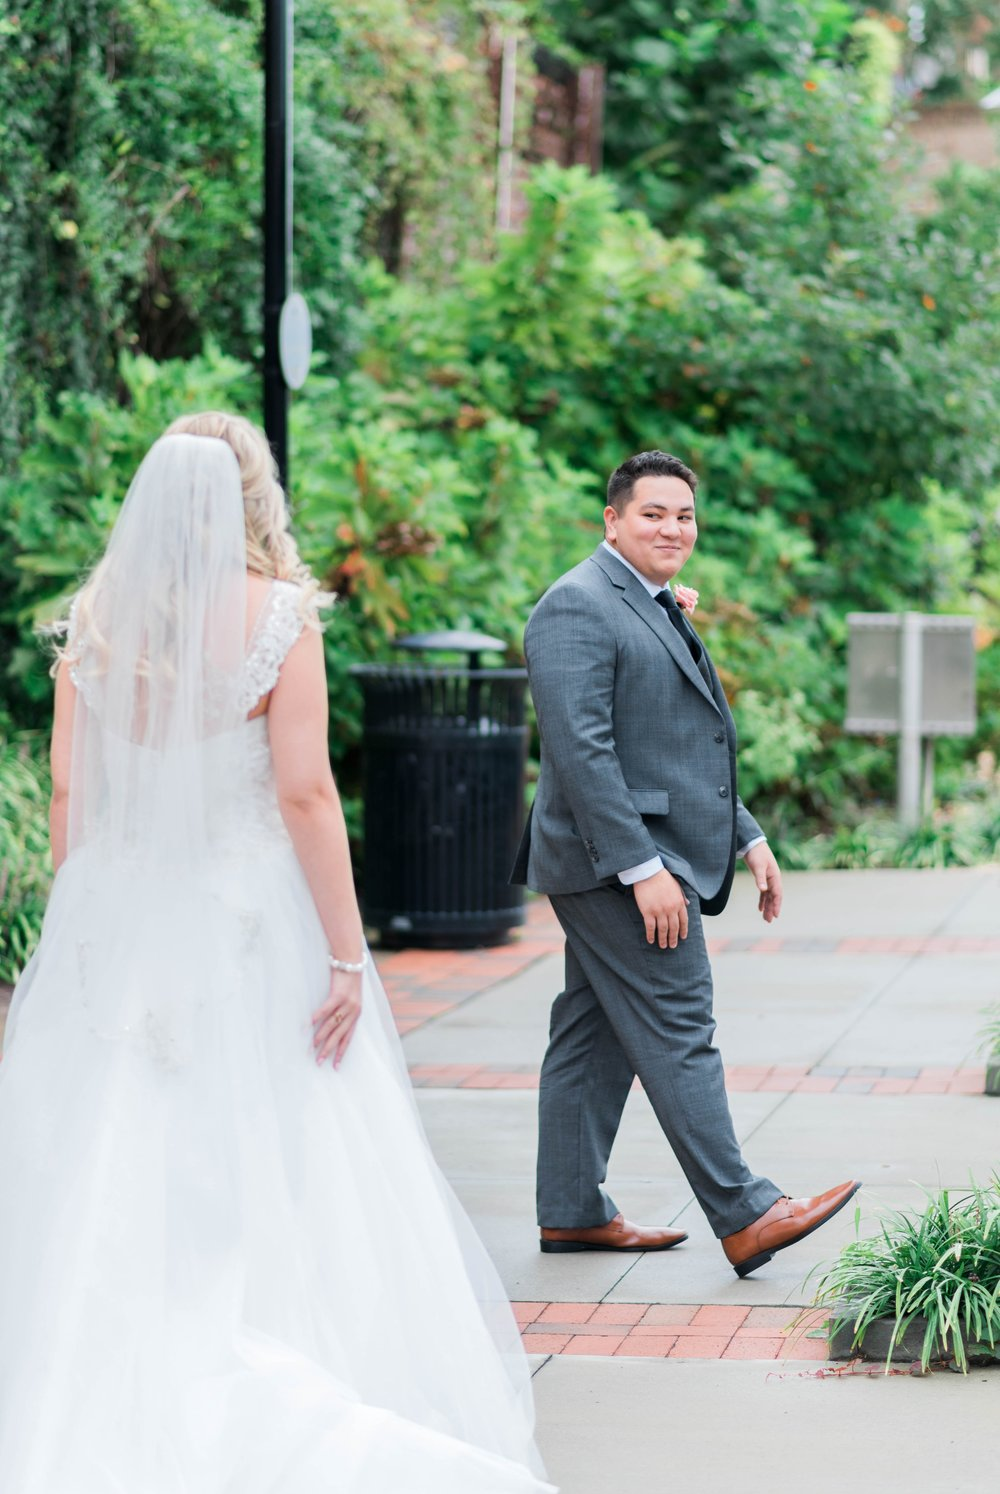 LynchburgVirginia_Virginiaweddingphotographer_michaelkim 16.jpg